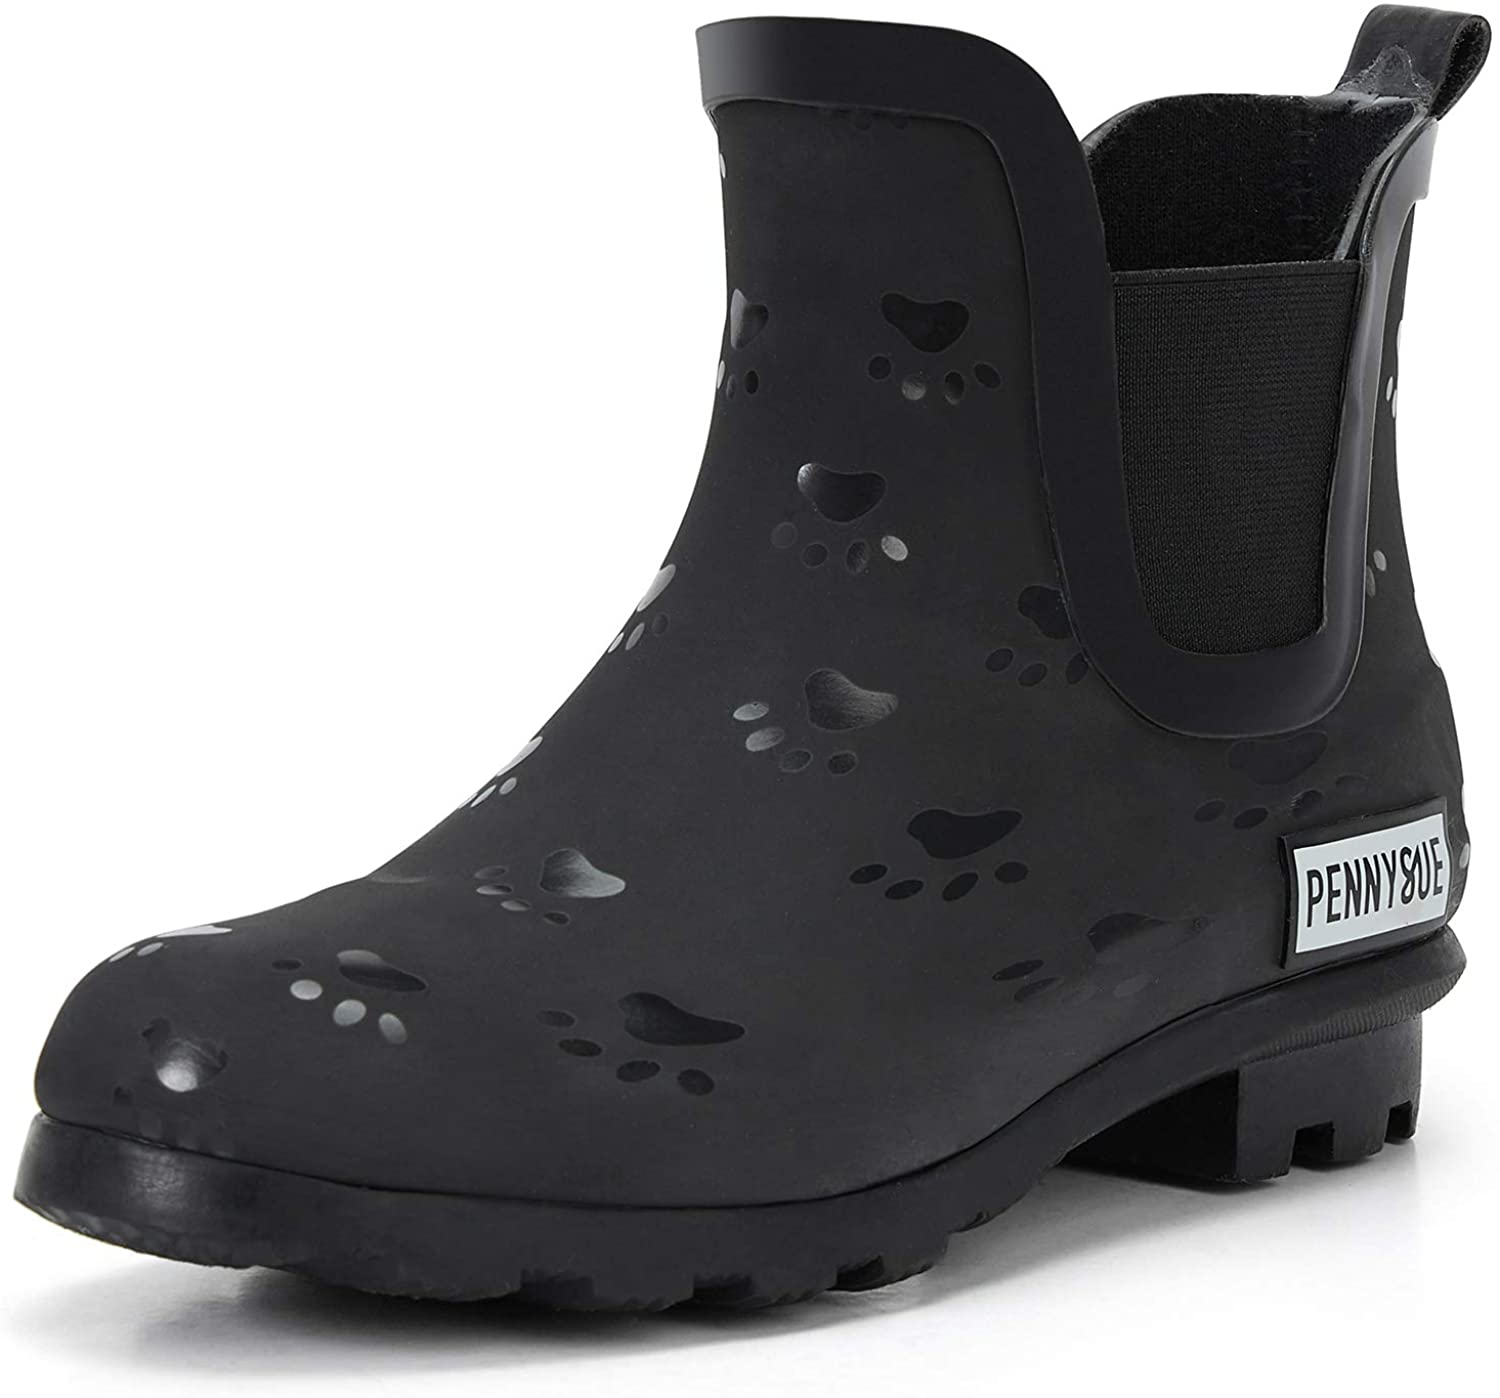 PENNYSUE Women's Ankle Rain boots Waterproof Chelsea Booties with Rubber Non-Slip Sole